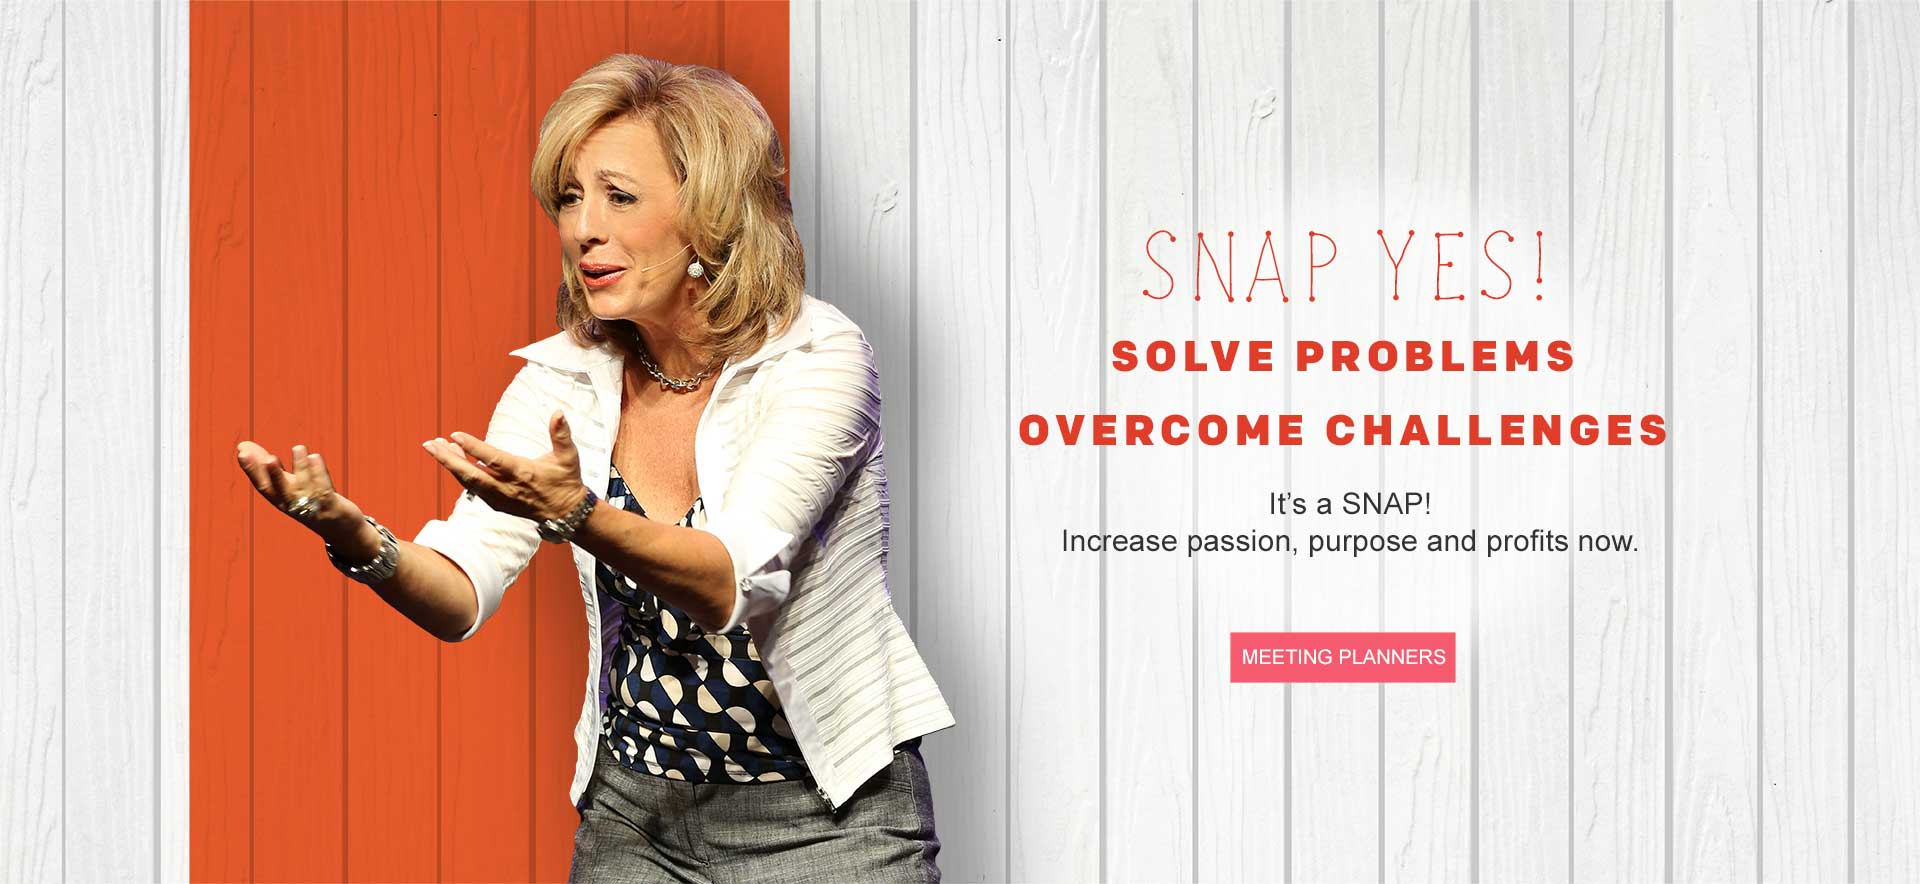 Solve Problems overcome challenges author snap yes keynote speaker dede murcer moffett change in a SNAP business and life